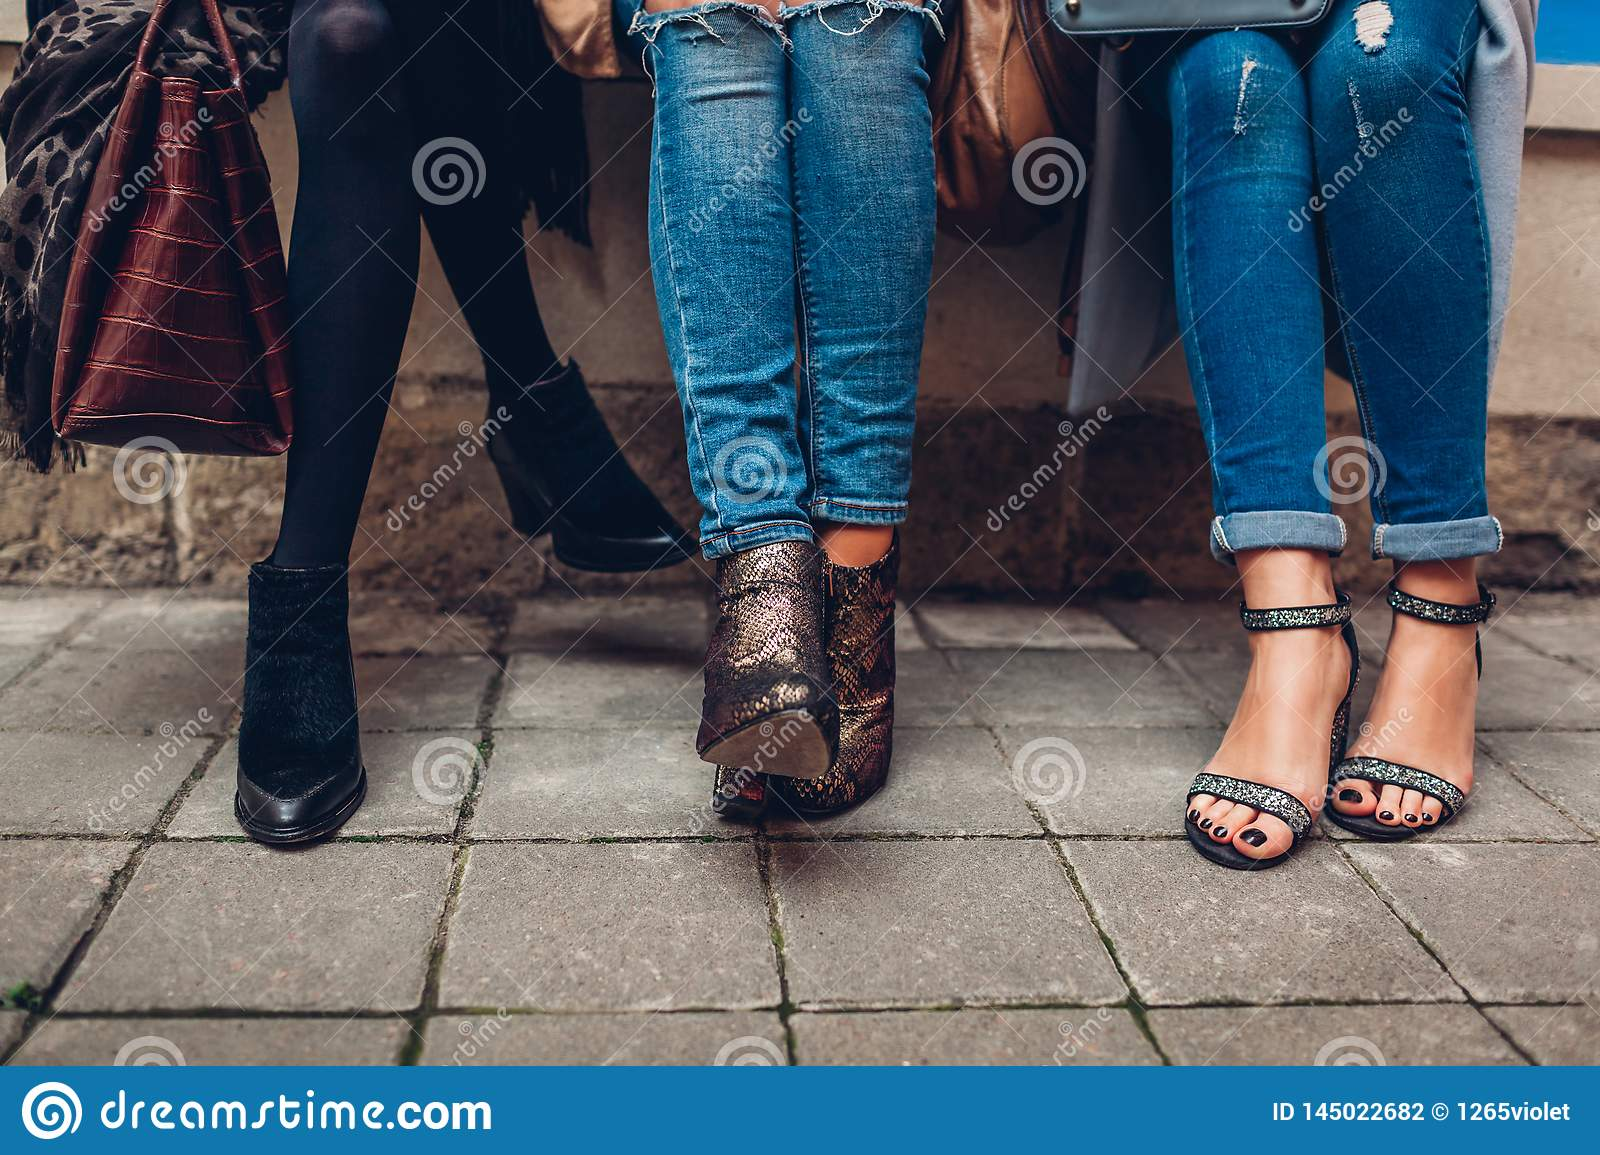 Three Women Wearing Stylish Shoes And Accessories Outdoors